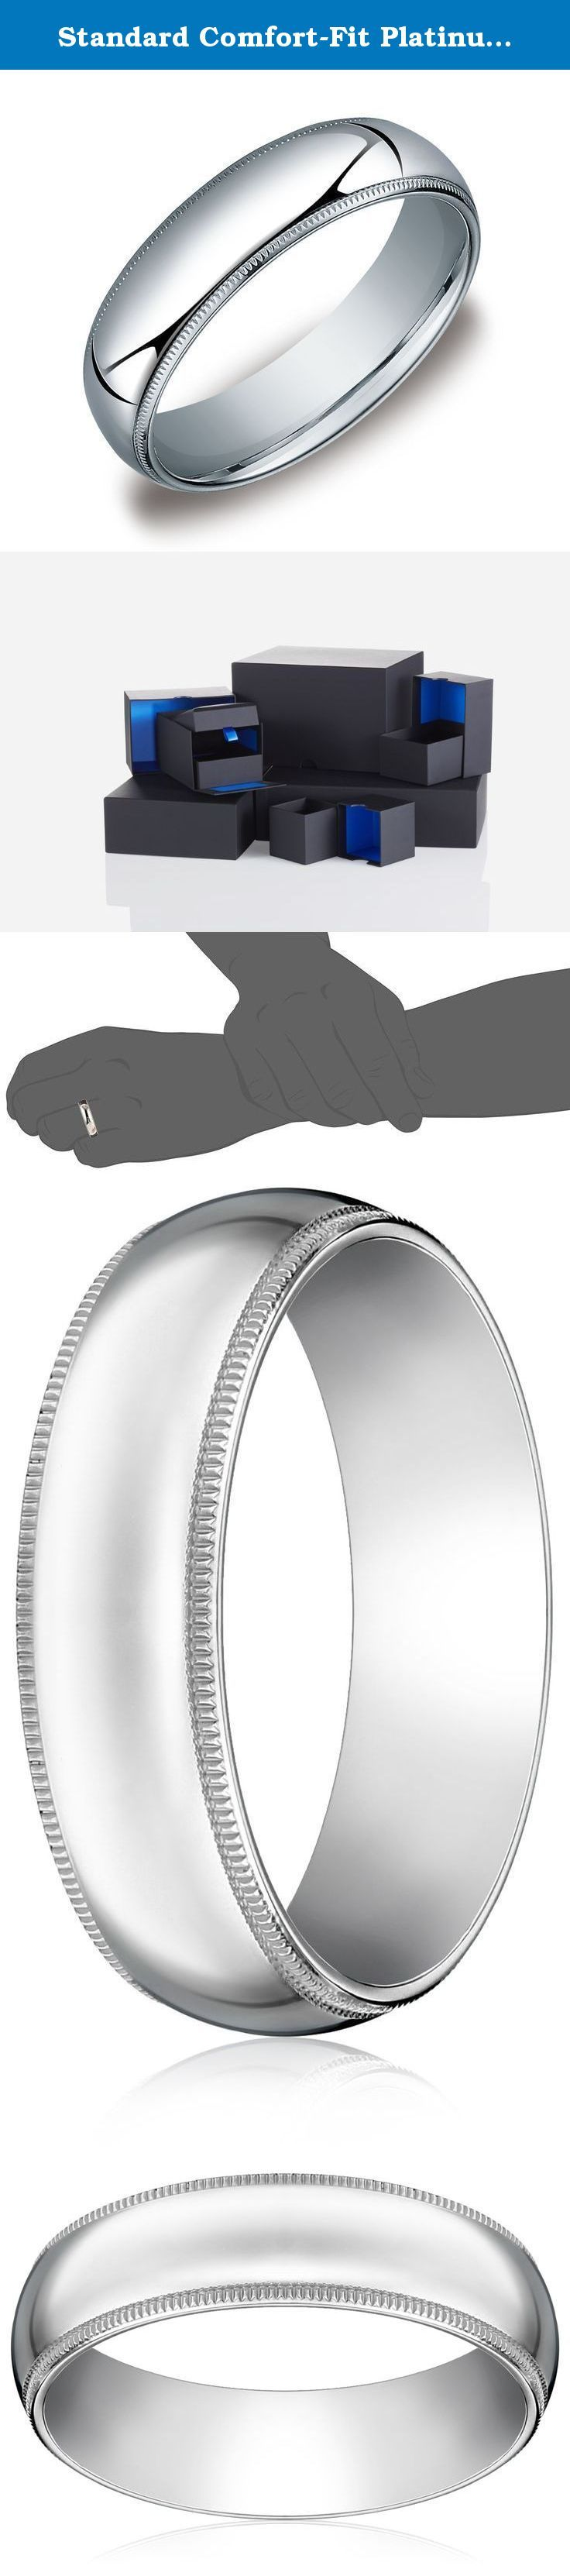 Standard Comfort-Fit Platinum Milgrain Band, 6mm, Size 9.5. Choose a solid, classic look with this 6mm comfort fit men's wedding band, crafted in strong and radiant 950 platinum. This handsome band has a bright polished finish with delicate milgrain detailing along the edges. The comfort fit design features a rounded polished interior that allows the ring to slide on easily and rest comfortably on the finger. Platinum is a beautiful and popular precious metal, valued for its extreme…